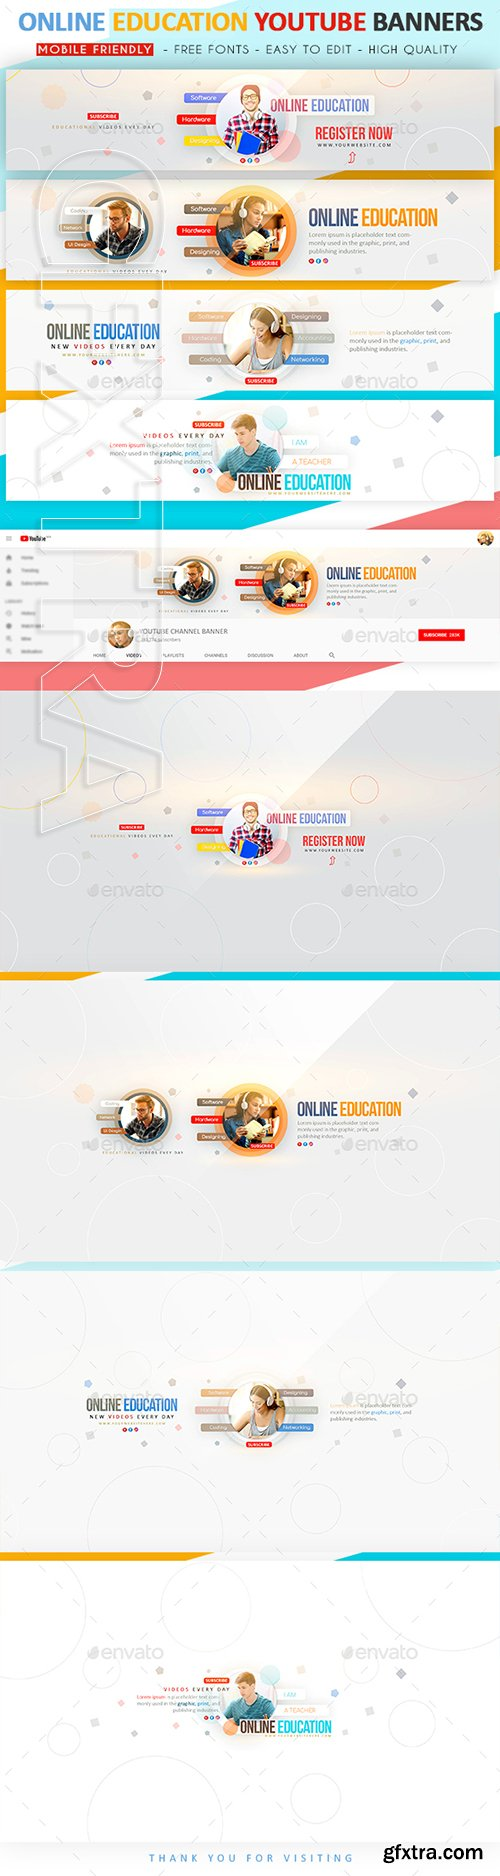 GraphicRiver - Online Education YouTube Banner 22687076